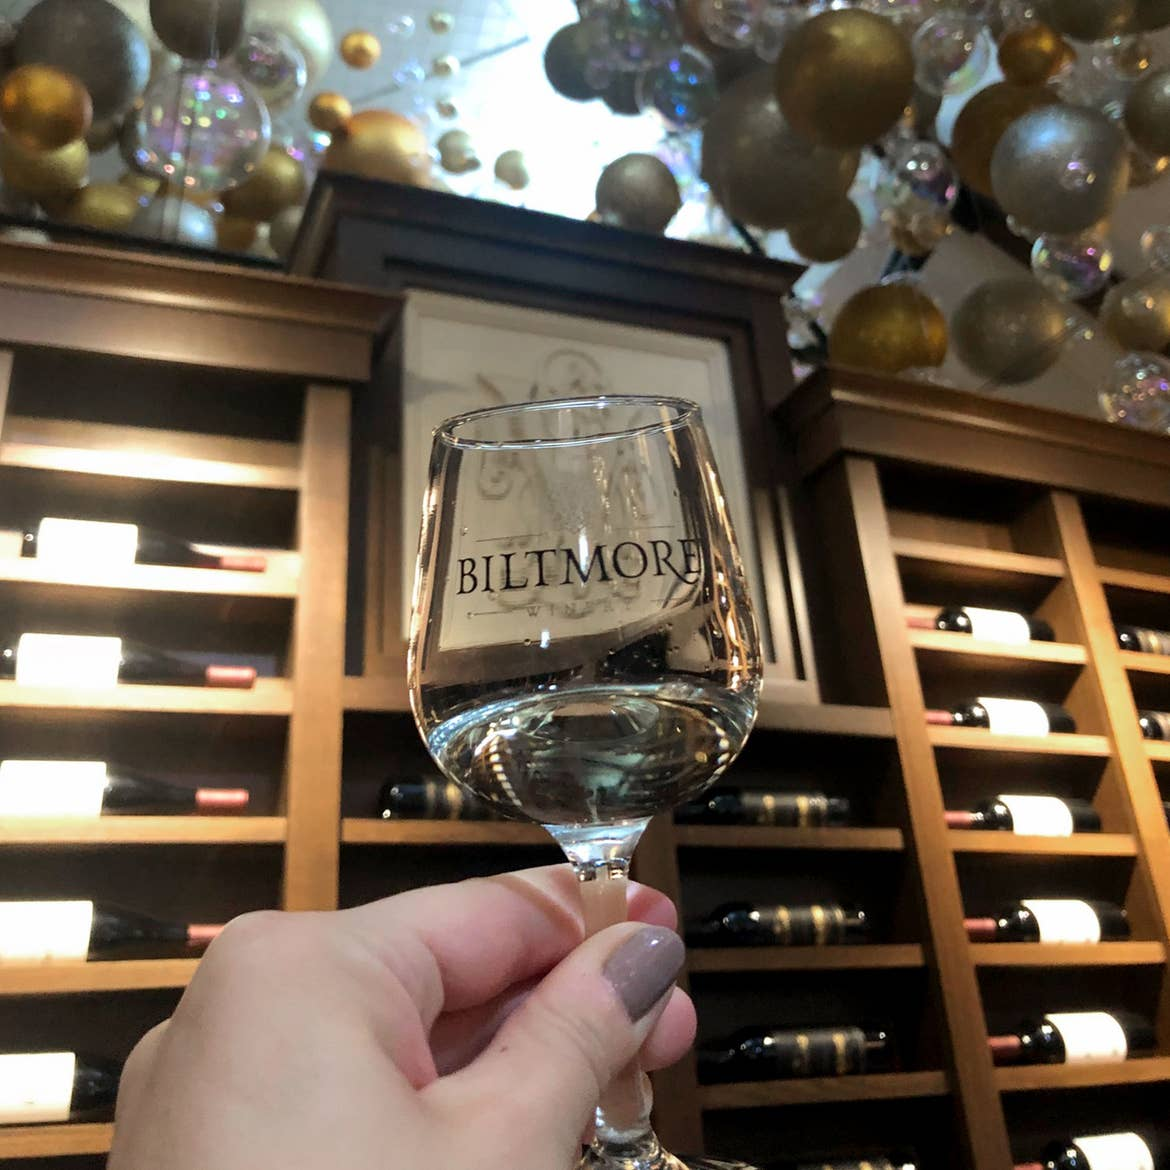 Author, Jennifer C. Harmon, holds a wineglass that reads, 'BILTMORE' in front of a wine shelf, with the ceiling decorated with festive silver, gold and white ornaments.